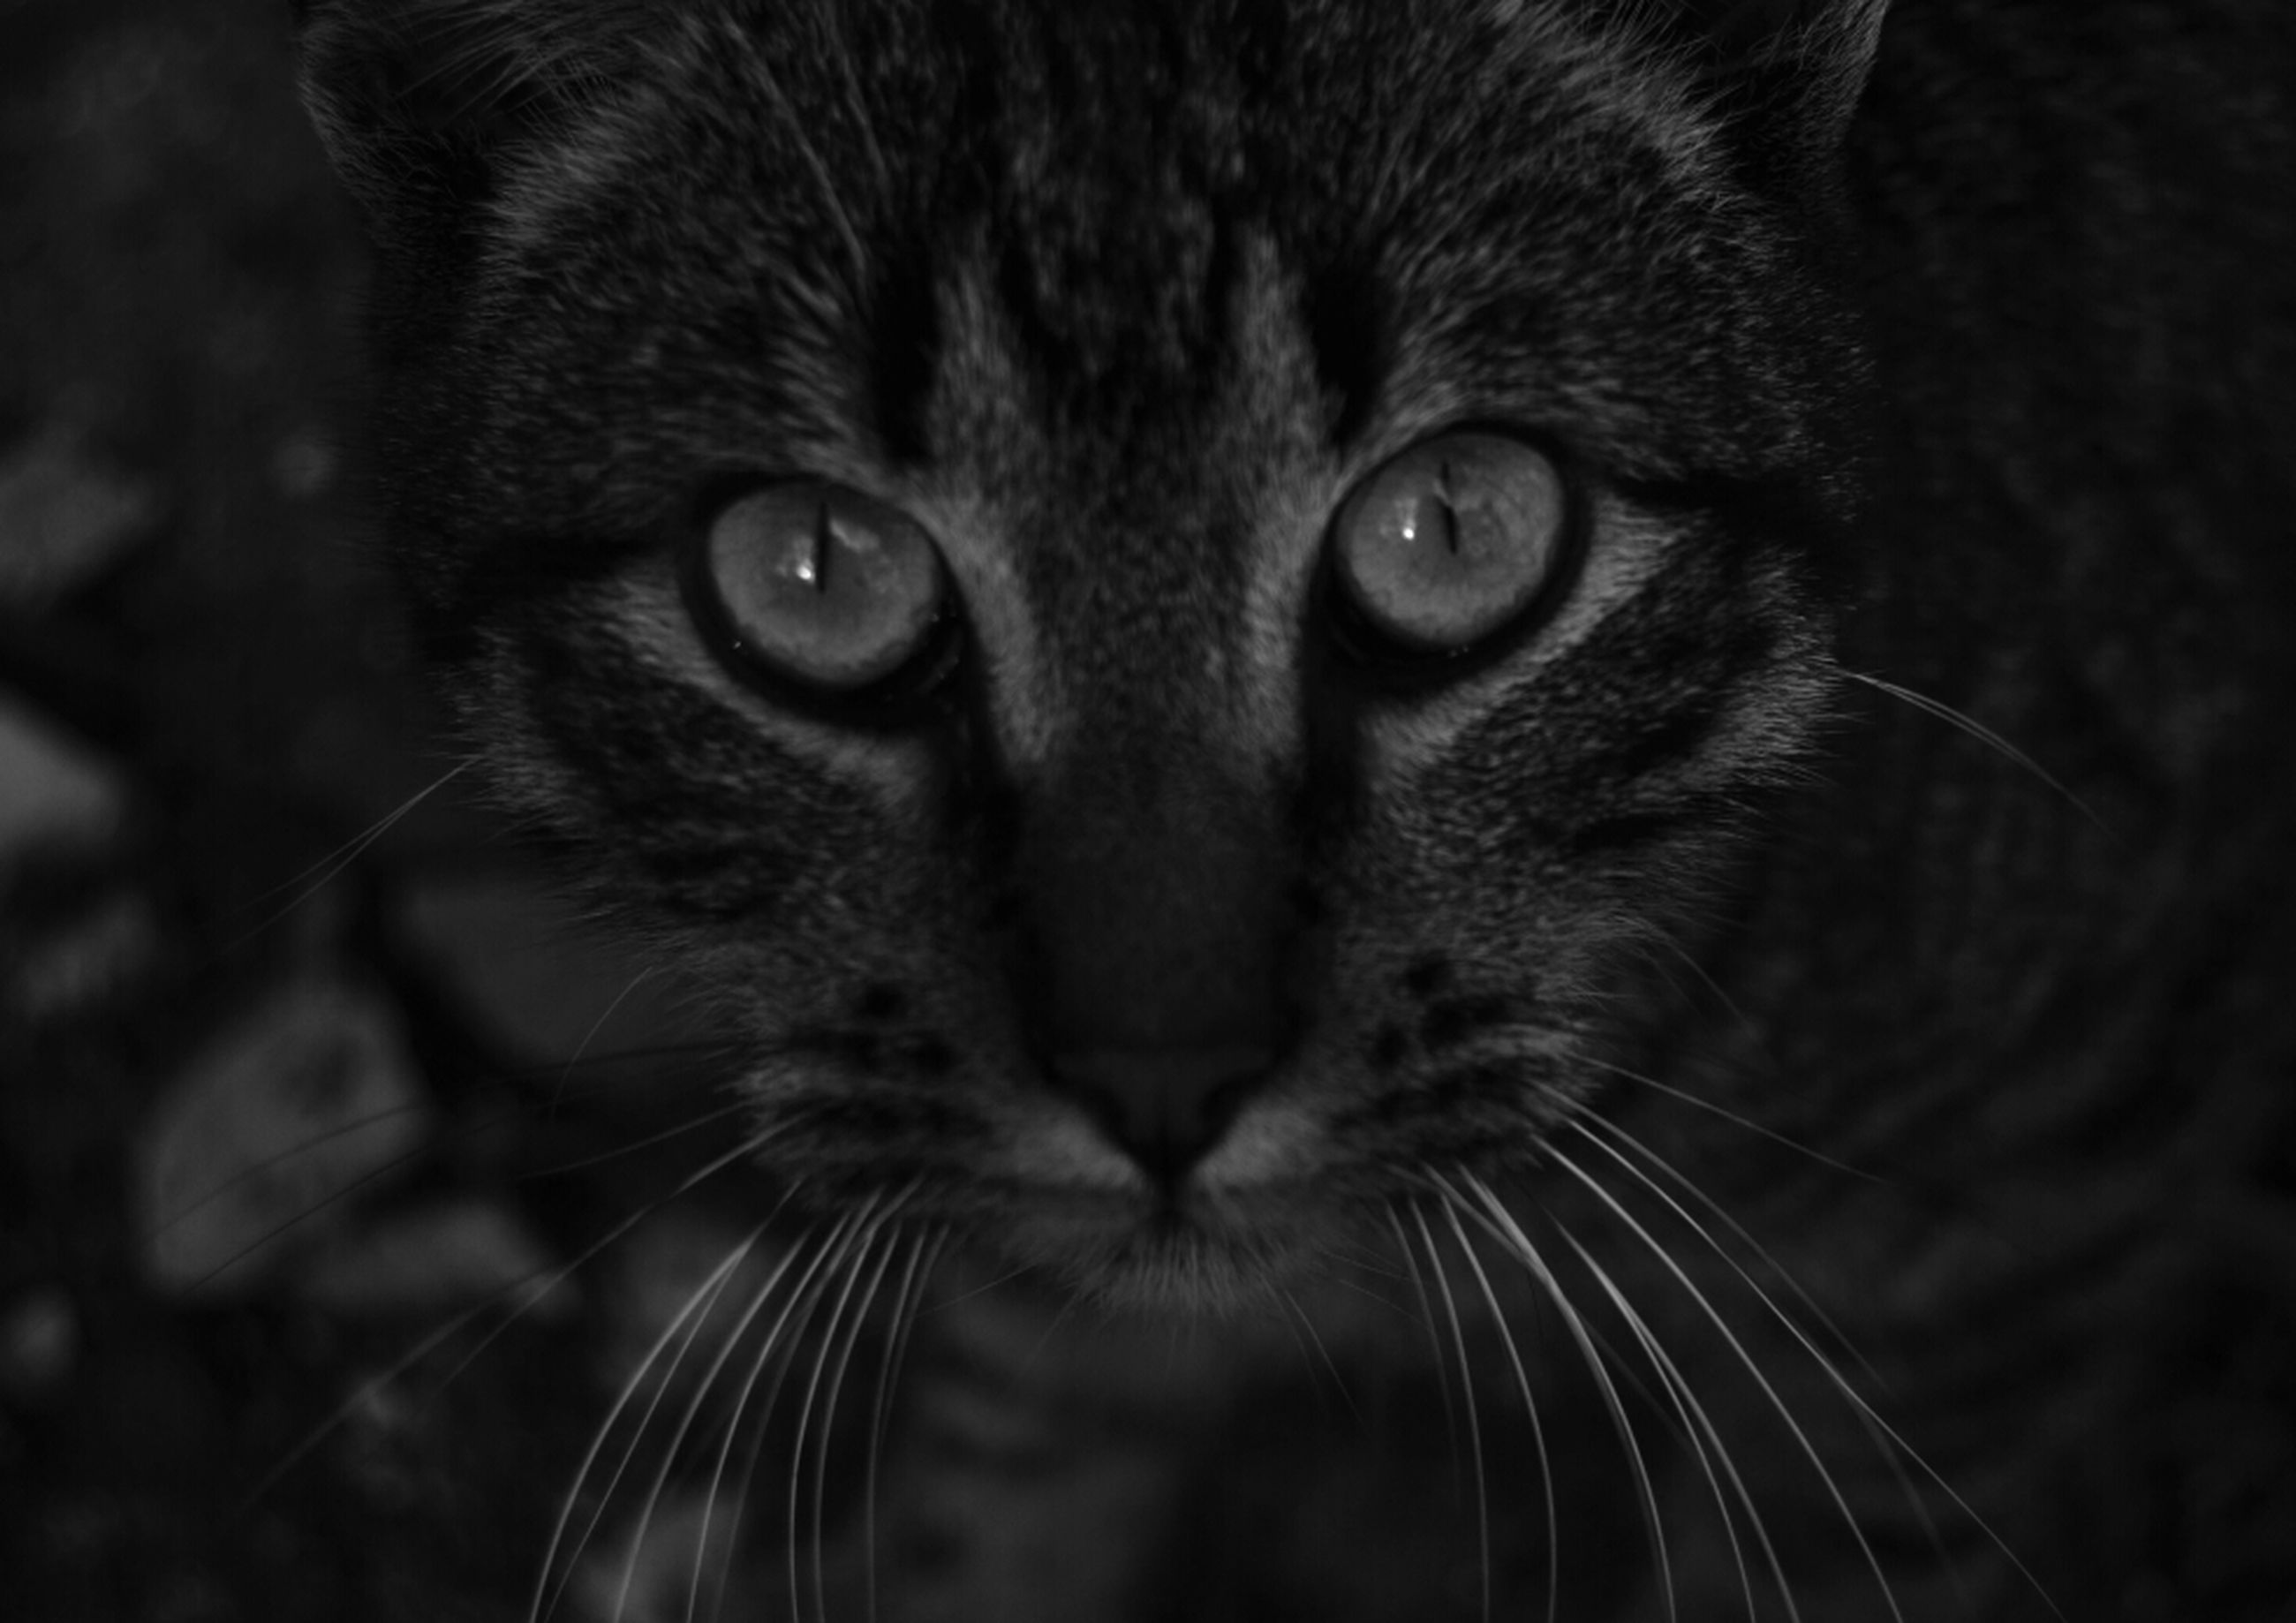 animal themes, pets, one animal, domestic cat, domestic animals, cat, looking at camera, portrait, mammal, whisker, feline, close-up, animal head, animal eye, indoors, focus on foreground, staring, alertness, black color, front view